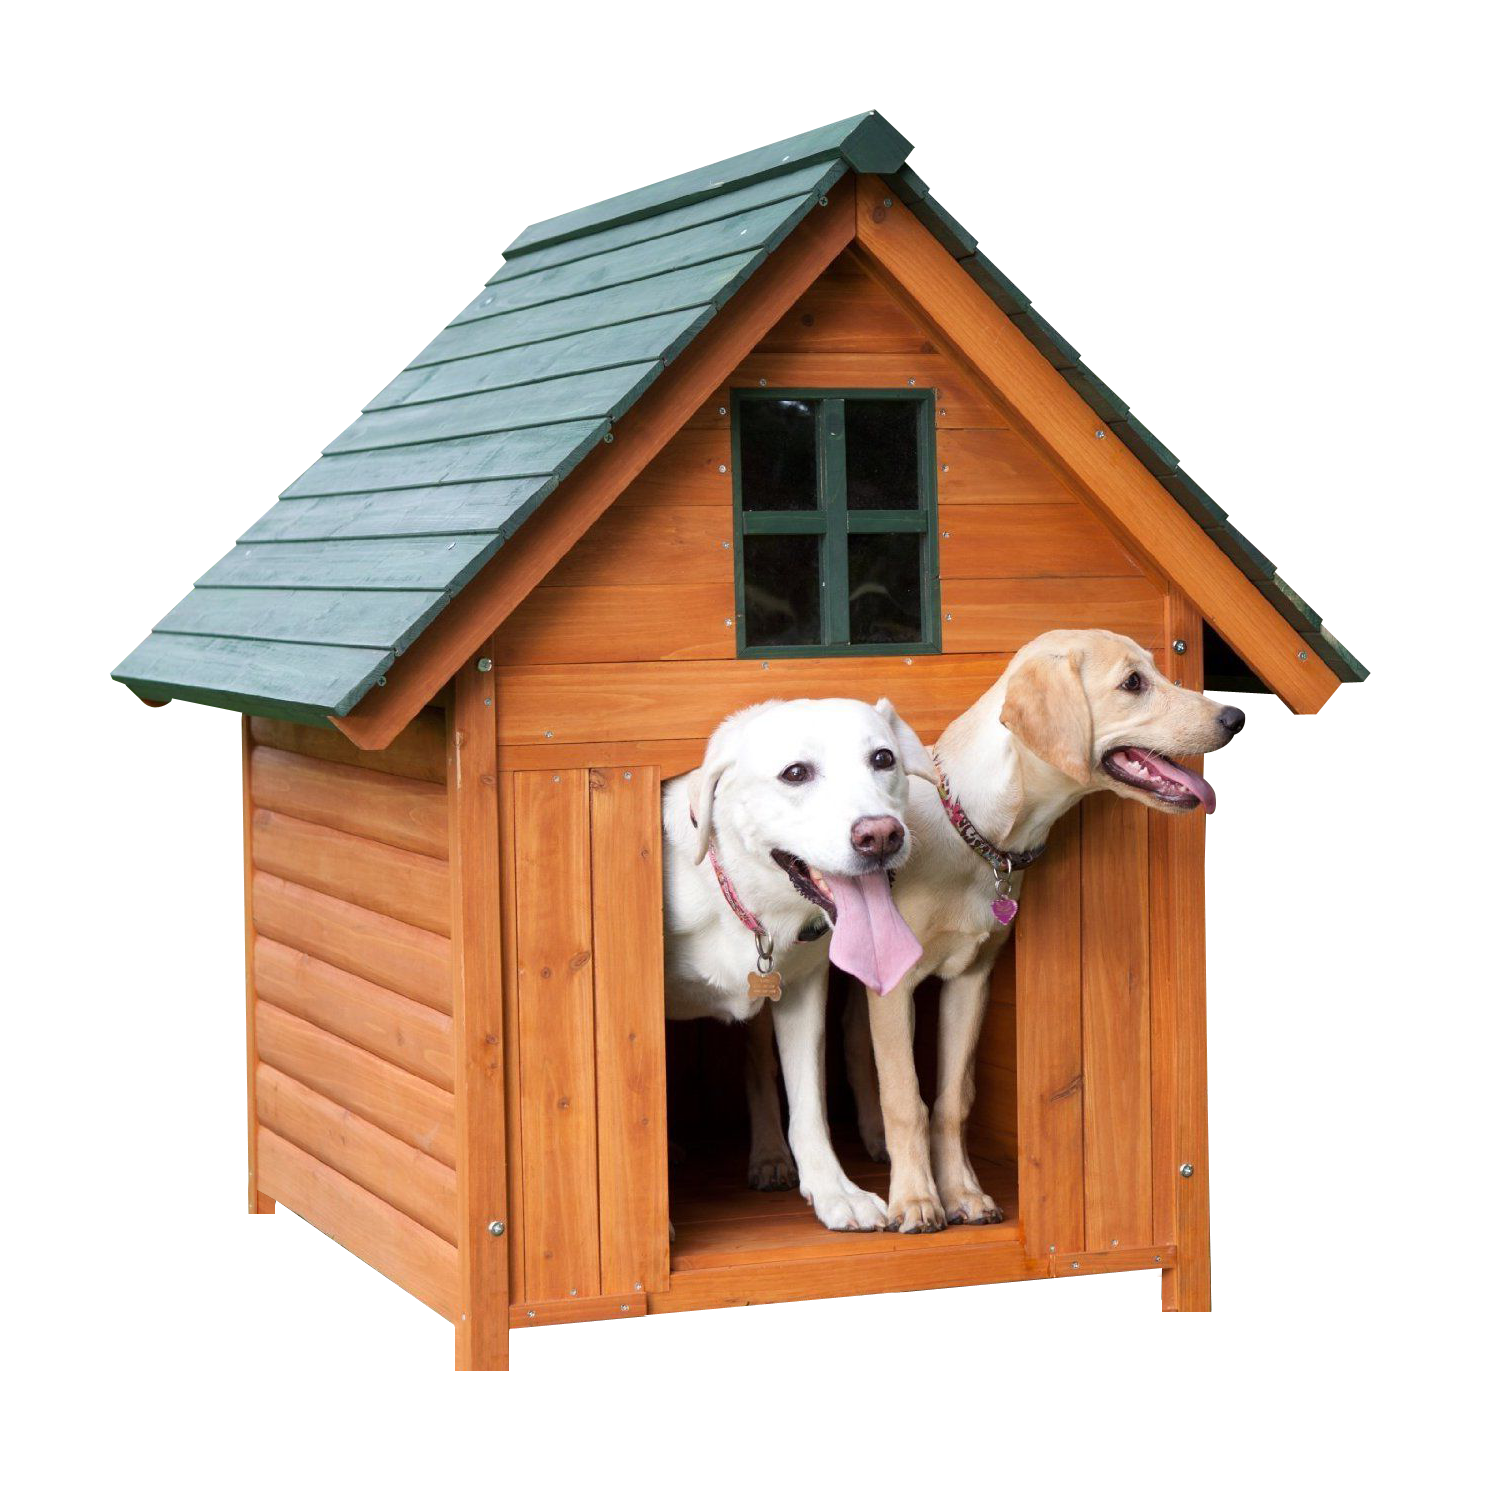 Clipart dog house graphic Dog House PNG Image - PurePNG | Free transparent CC0 PNG Image Library graphic